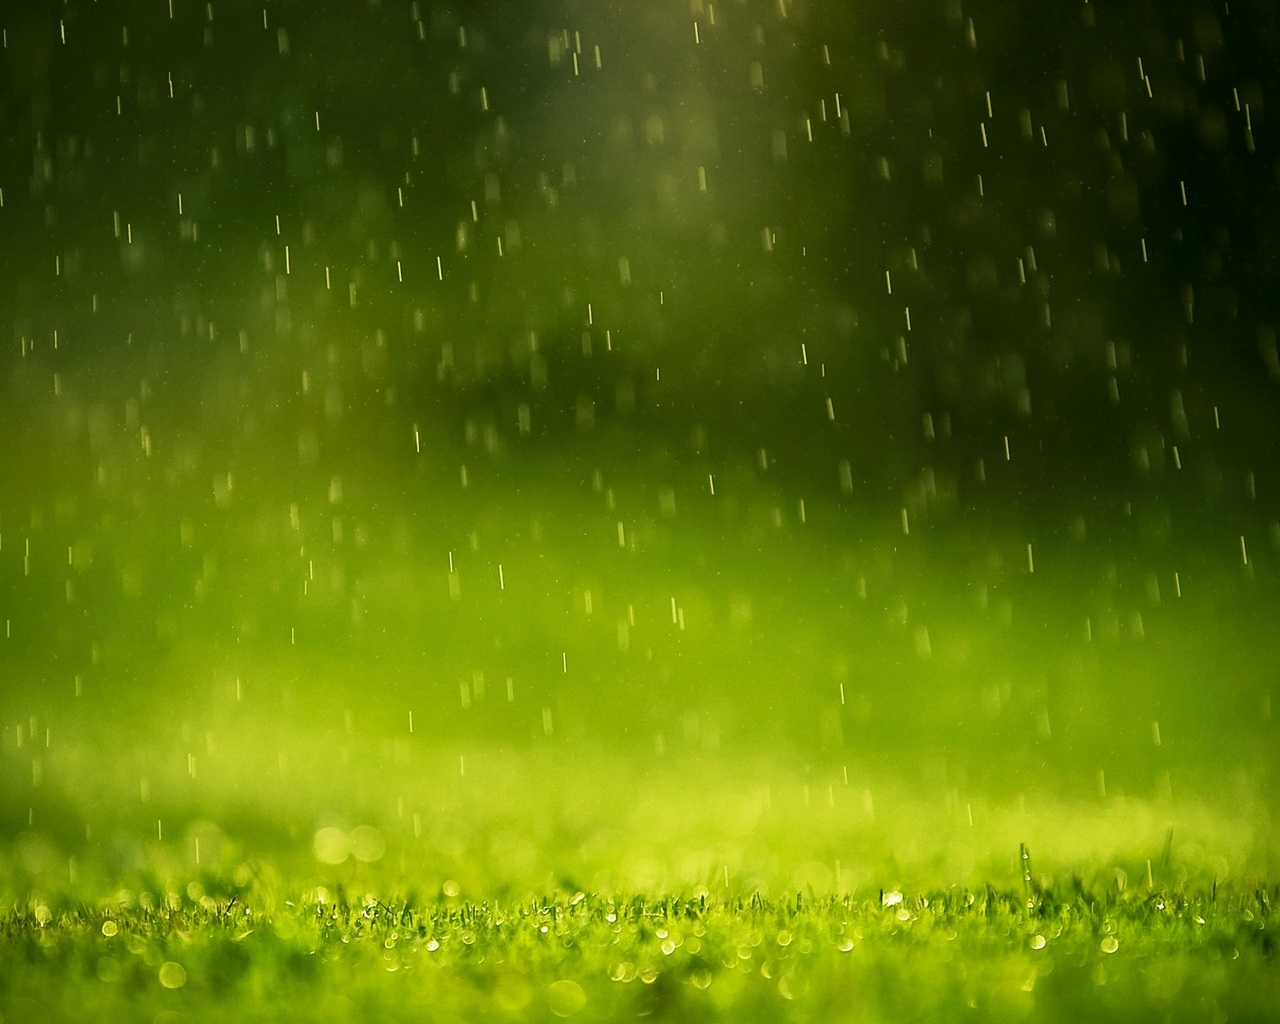 1280x1024 Beautiful Rain Drops 1280x1024 Resolution Hd 4k Wallpapers Images Backgrounds Photos And Pictures